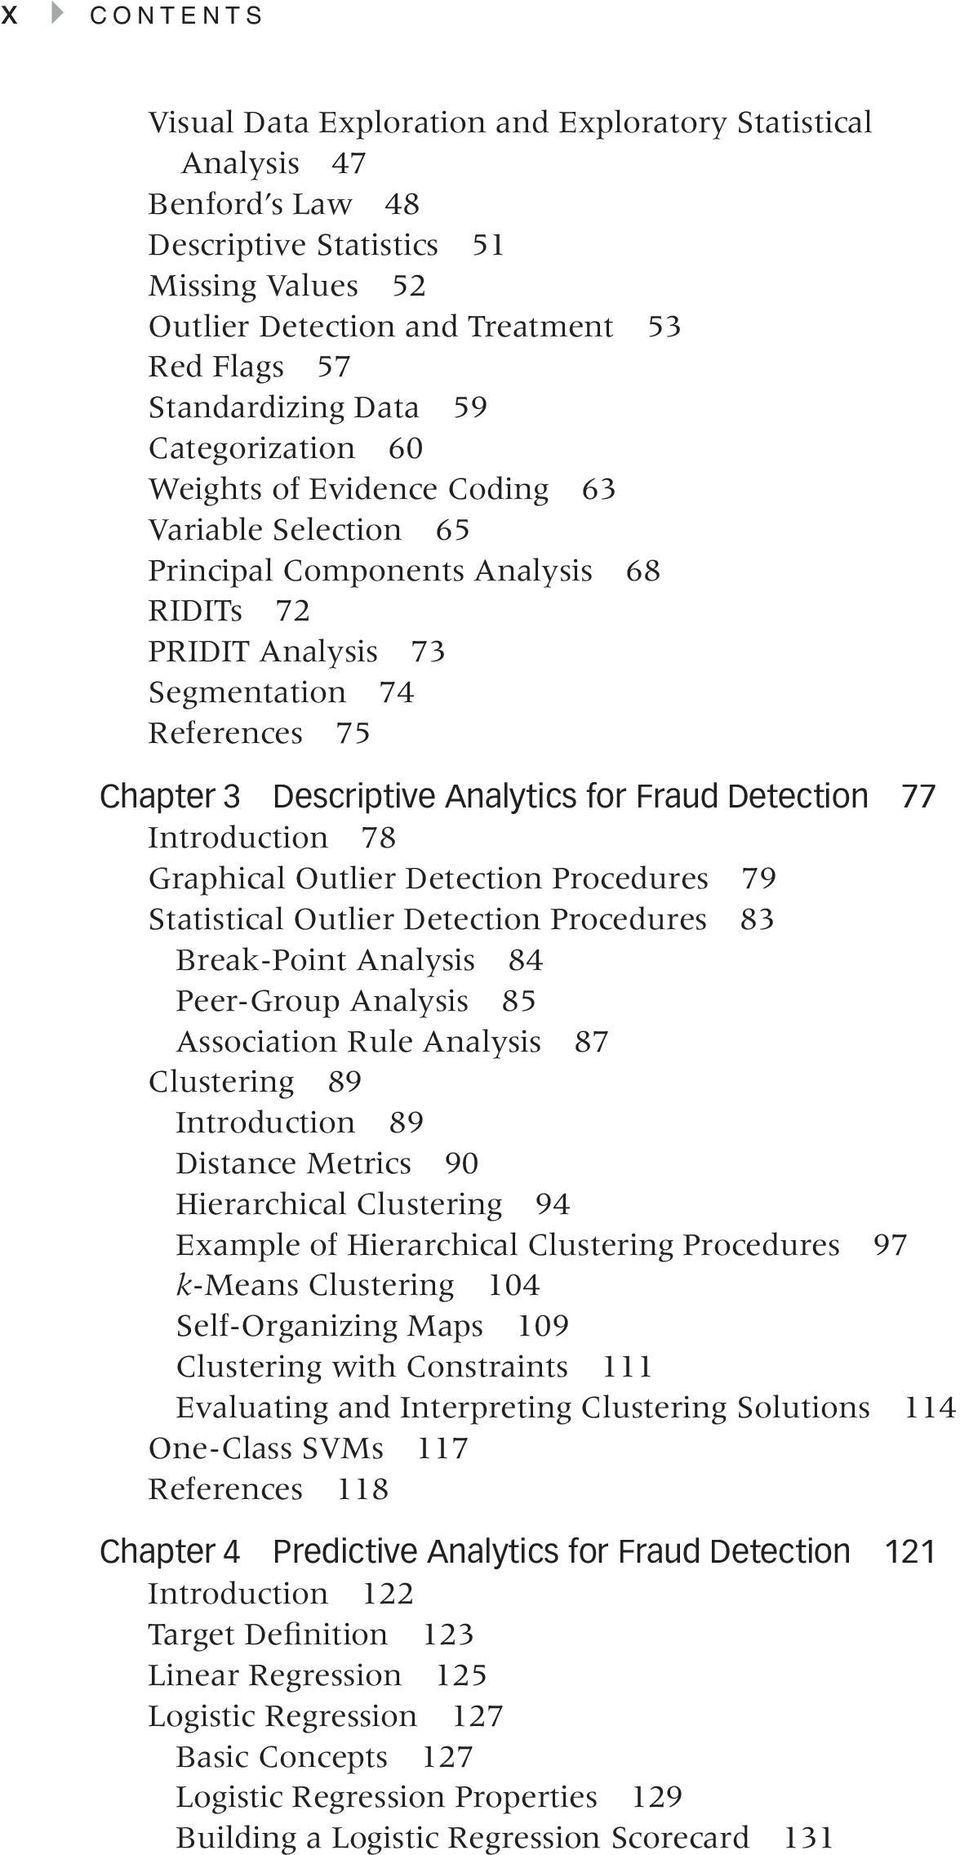 Analytics for Fraud Detection 77 Introduction 78 Graphical Outlier Detection Procedures 79 Statistical Outlier Detection Procedures 83 Break-Point Analysis 84 Peer-Group Analysis 85 Association Rule